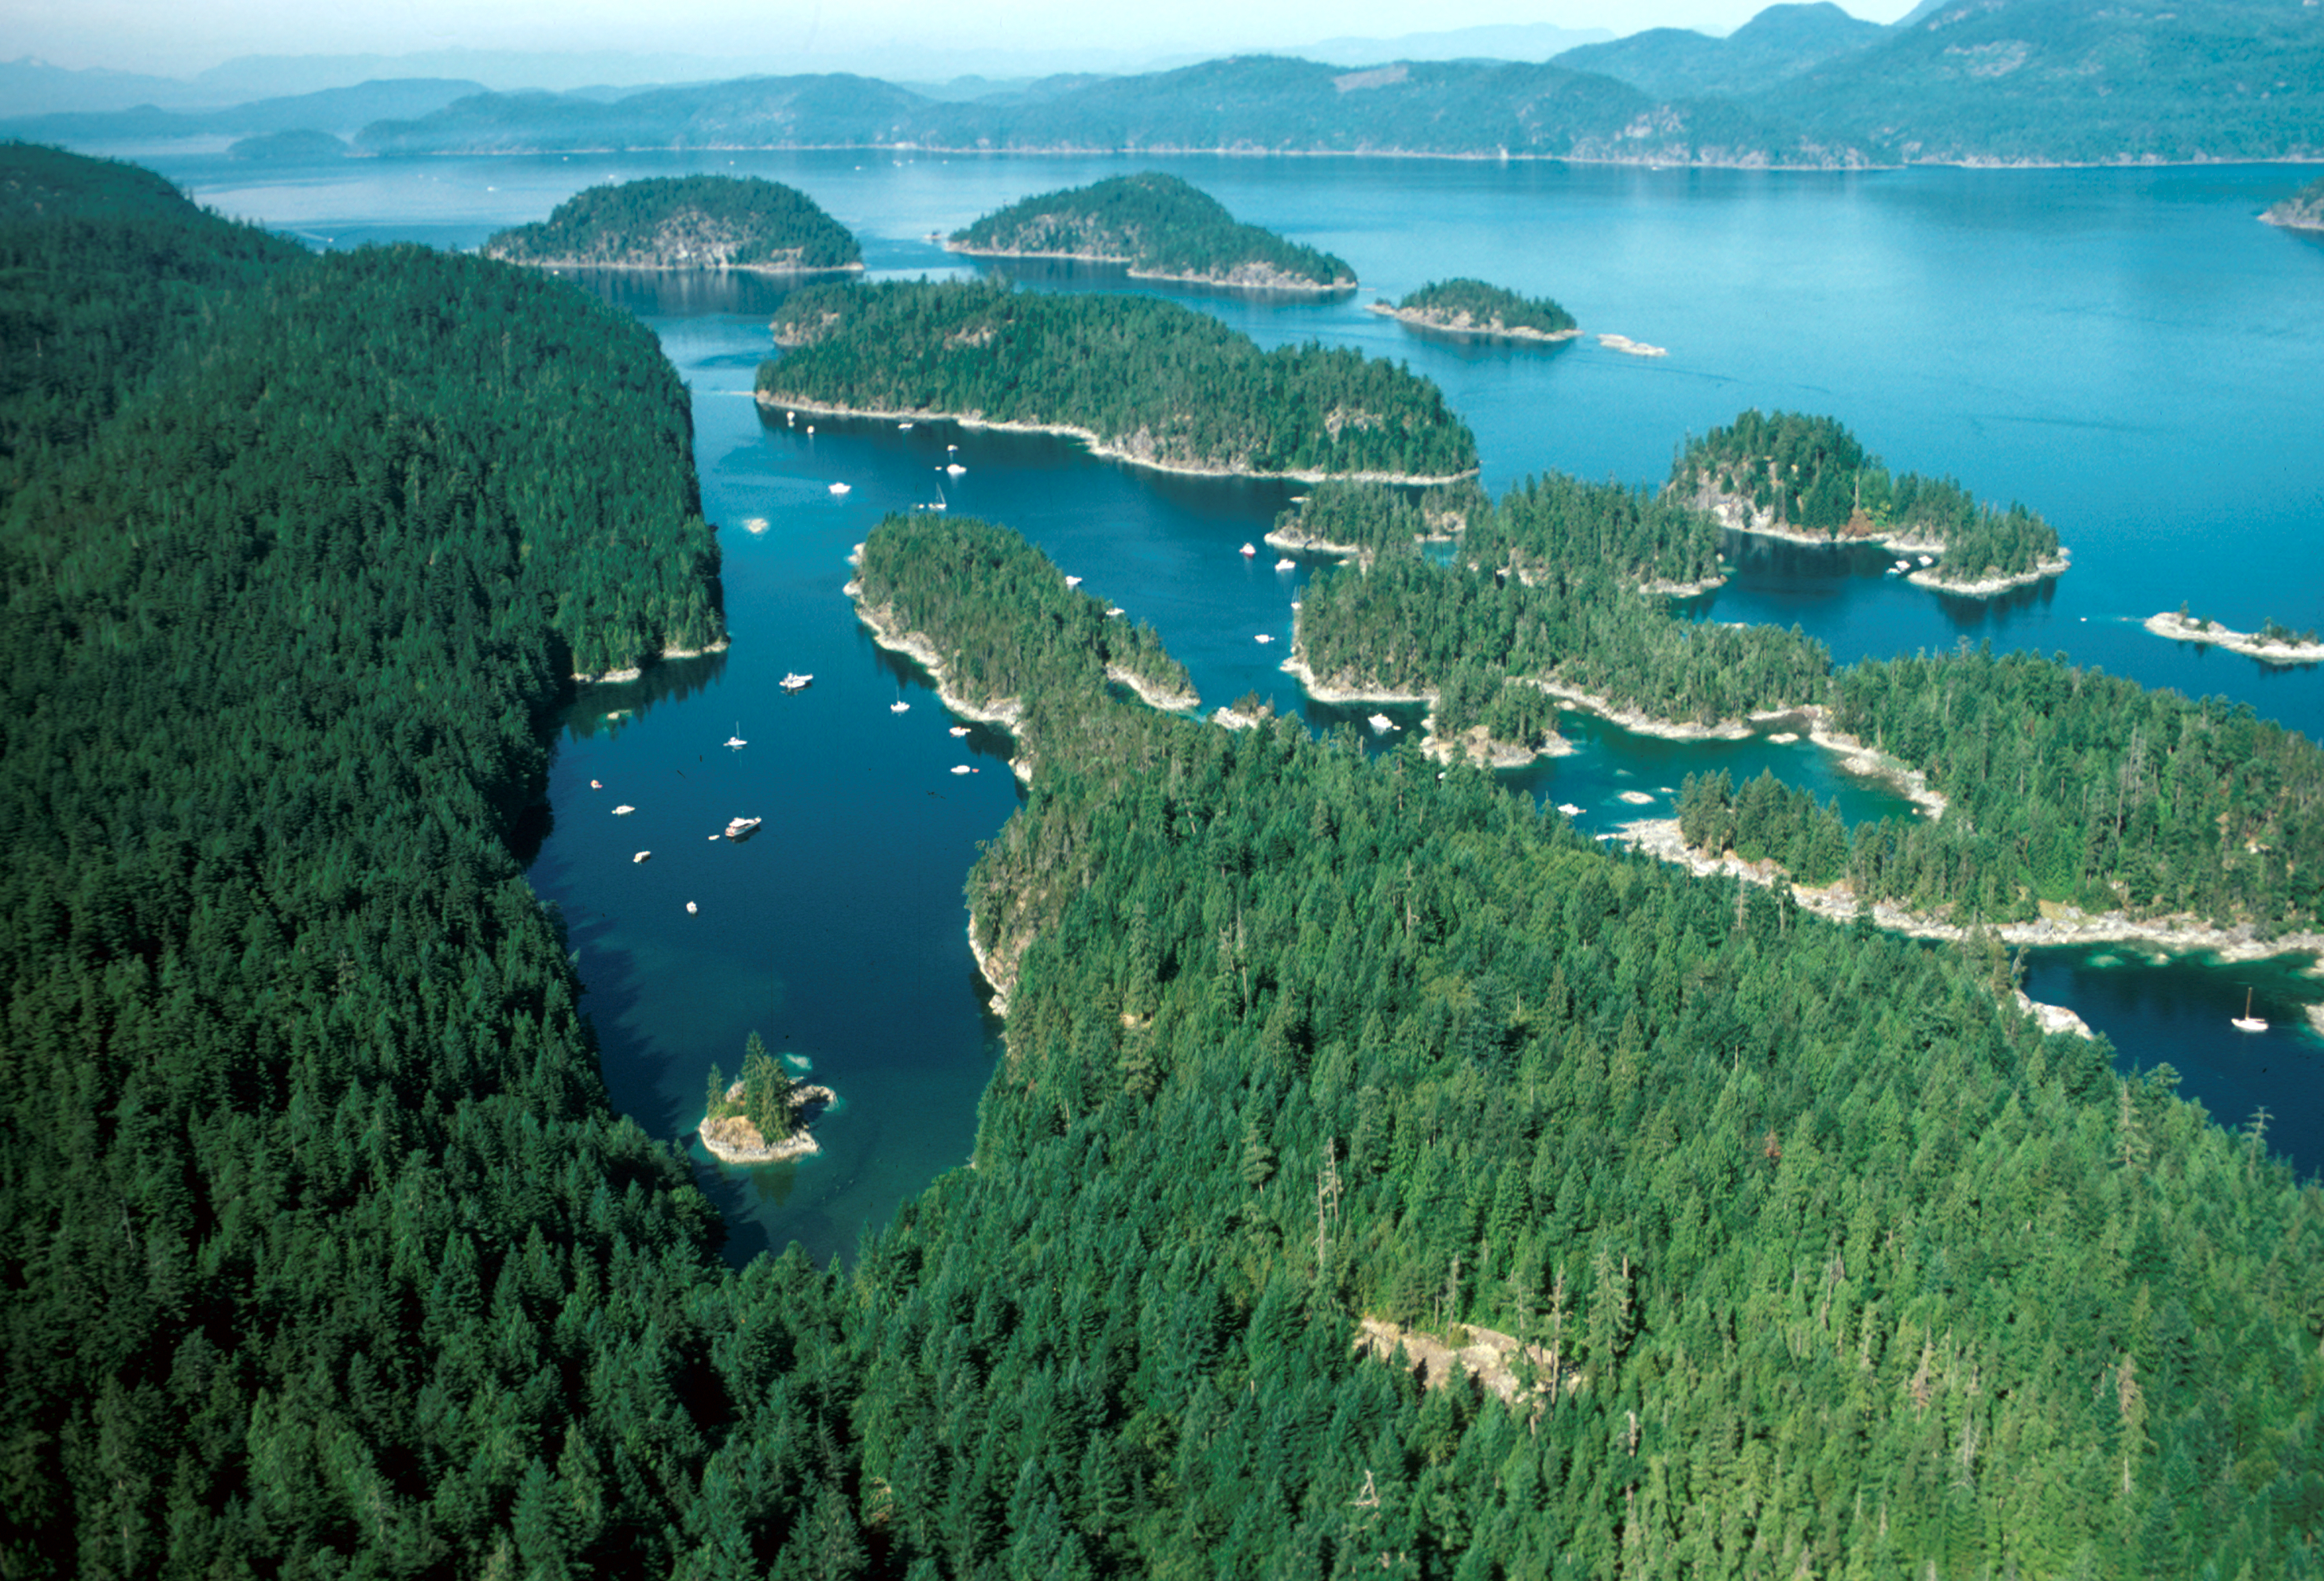 BC Parks BlogBritish Columbia's Marine Parks Make Boat-Camping Easy